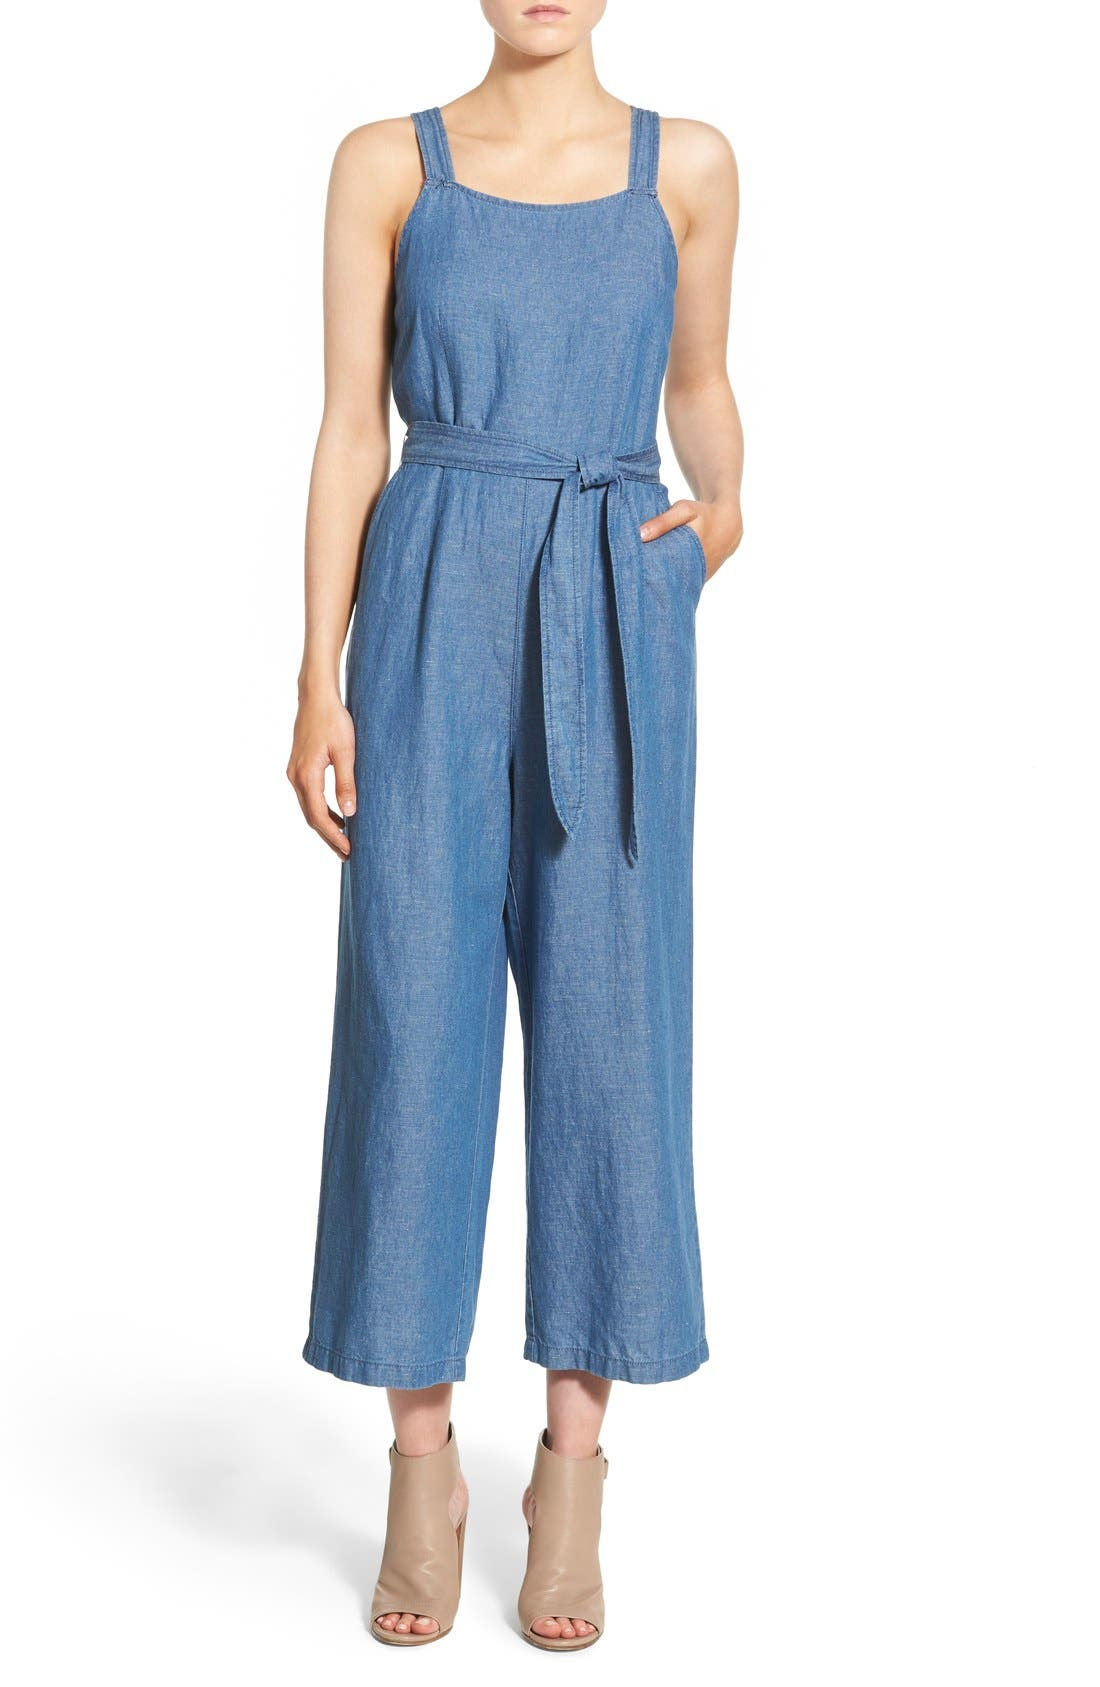 Alternate Image 1 Selected - Madewell 'Muralist' Crop Chambray Jumpsuit